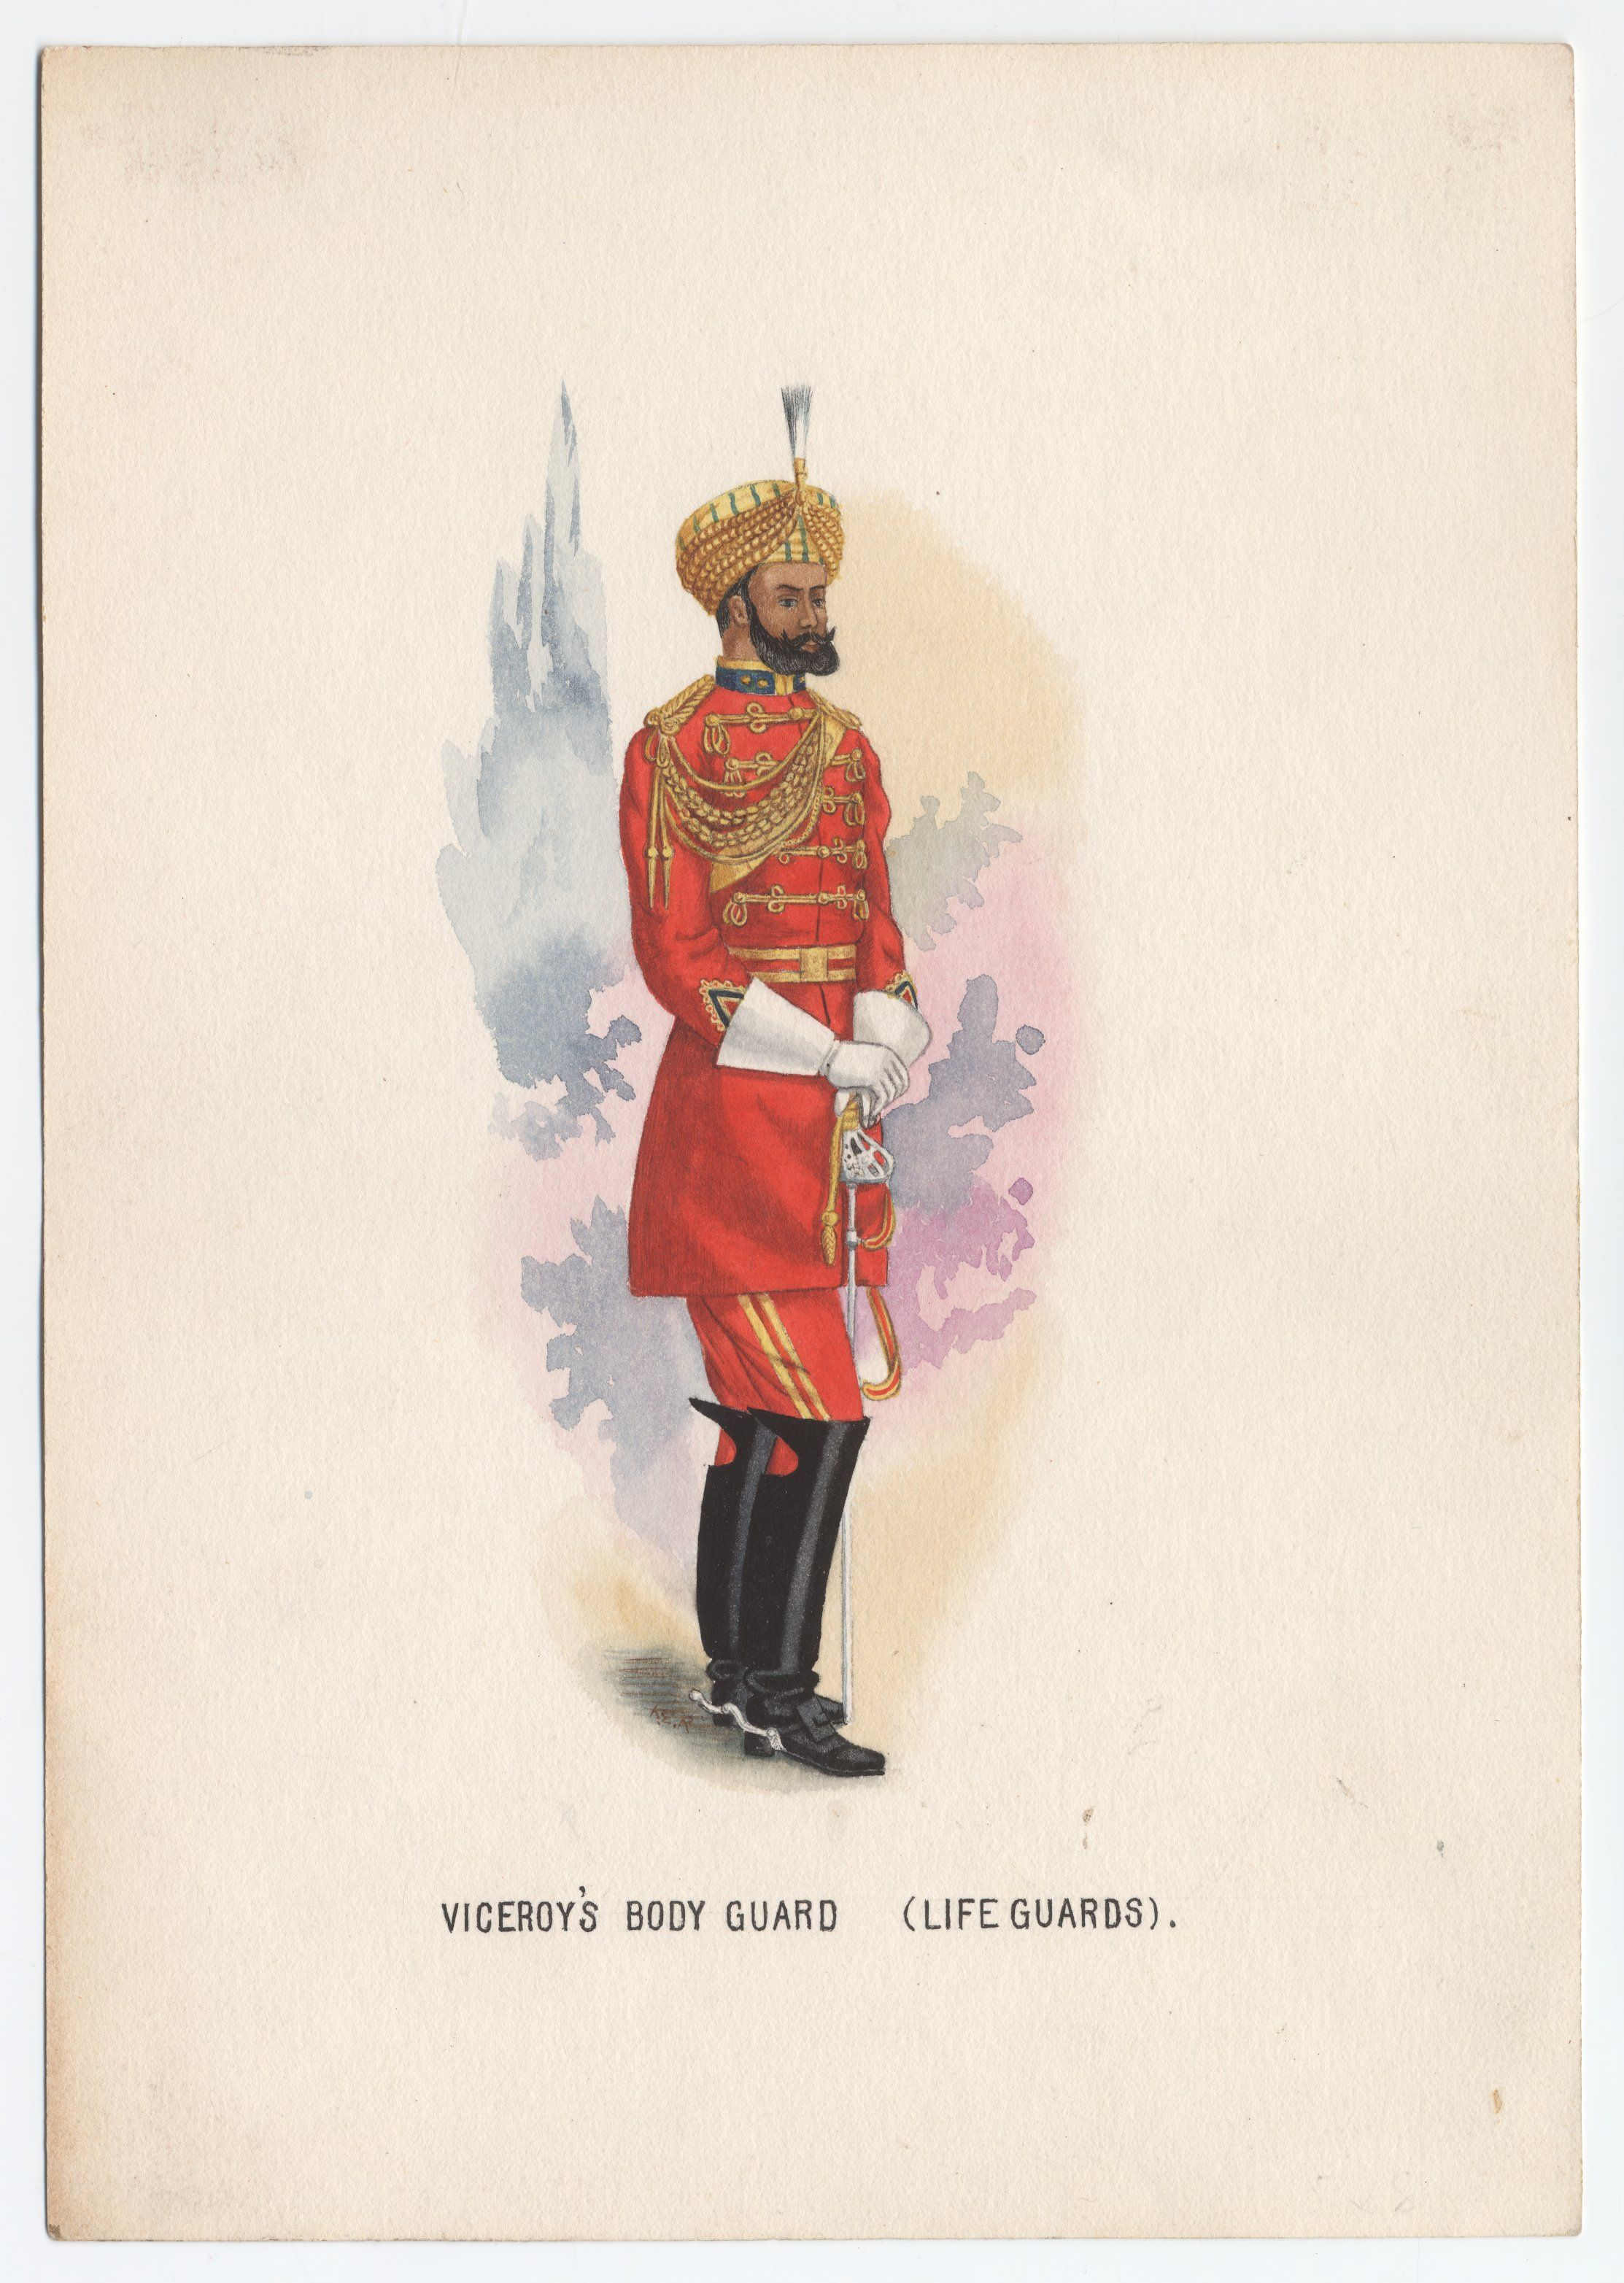 British; Viceroy's Bodyguard (Life Guards) c.1910 by K.E Rose